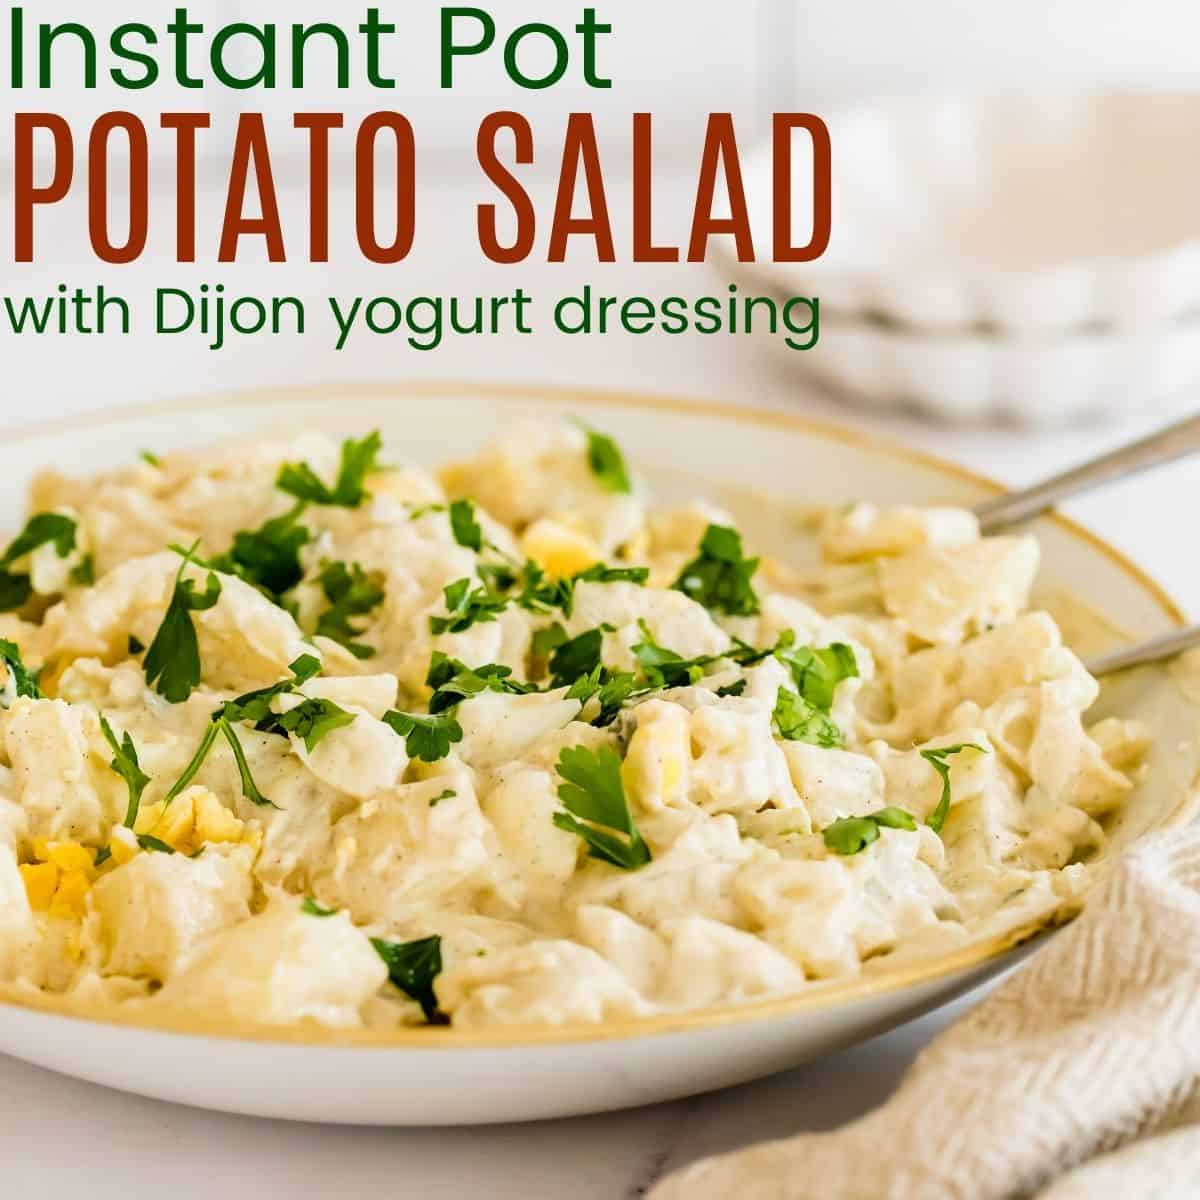 serving bowl of potato salad with two spoons in it